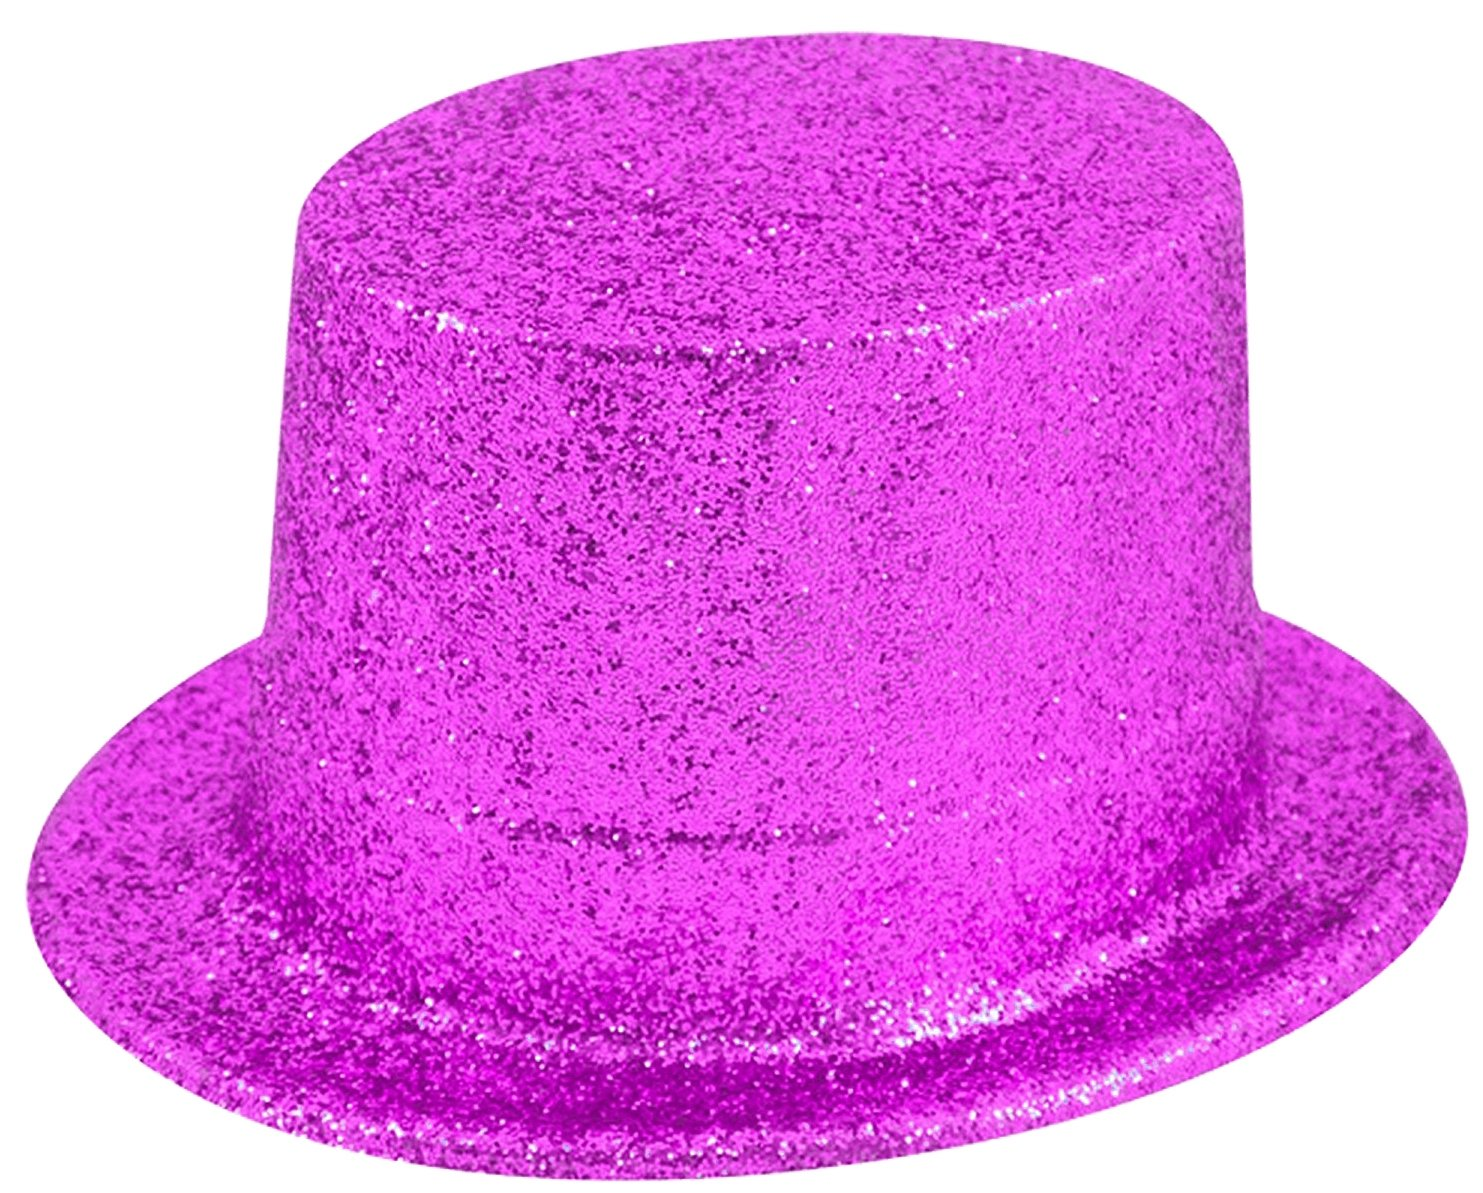 25a3ed5accd 12 x PINK Glitter Plastic Top Hats Adults Fancy Dress Costume Accessory   Amazon.co.uk  Toys   Games